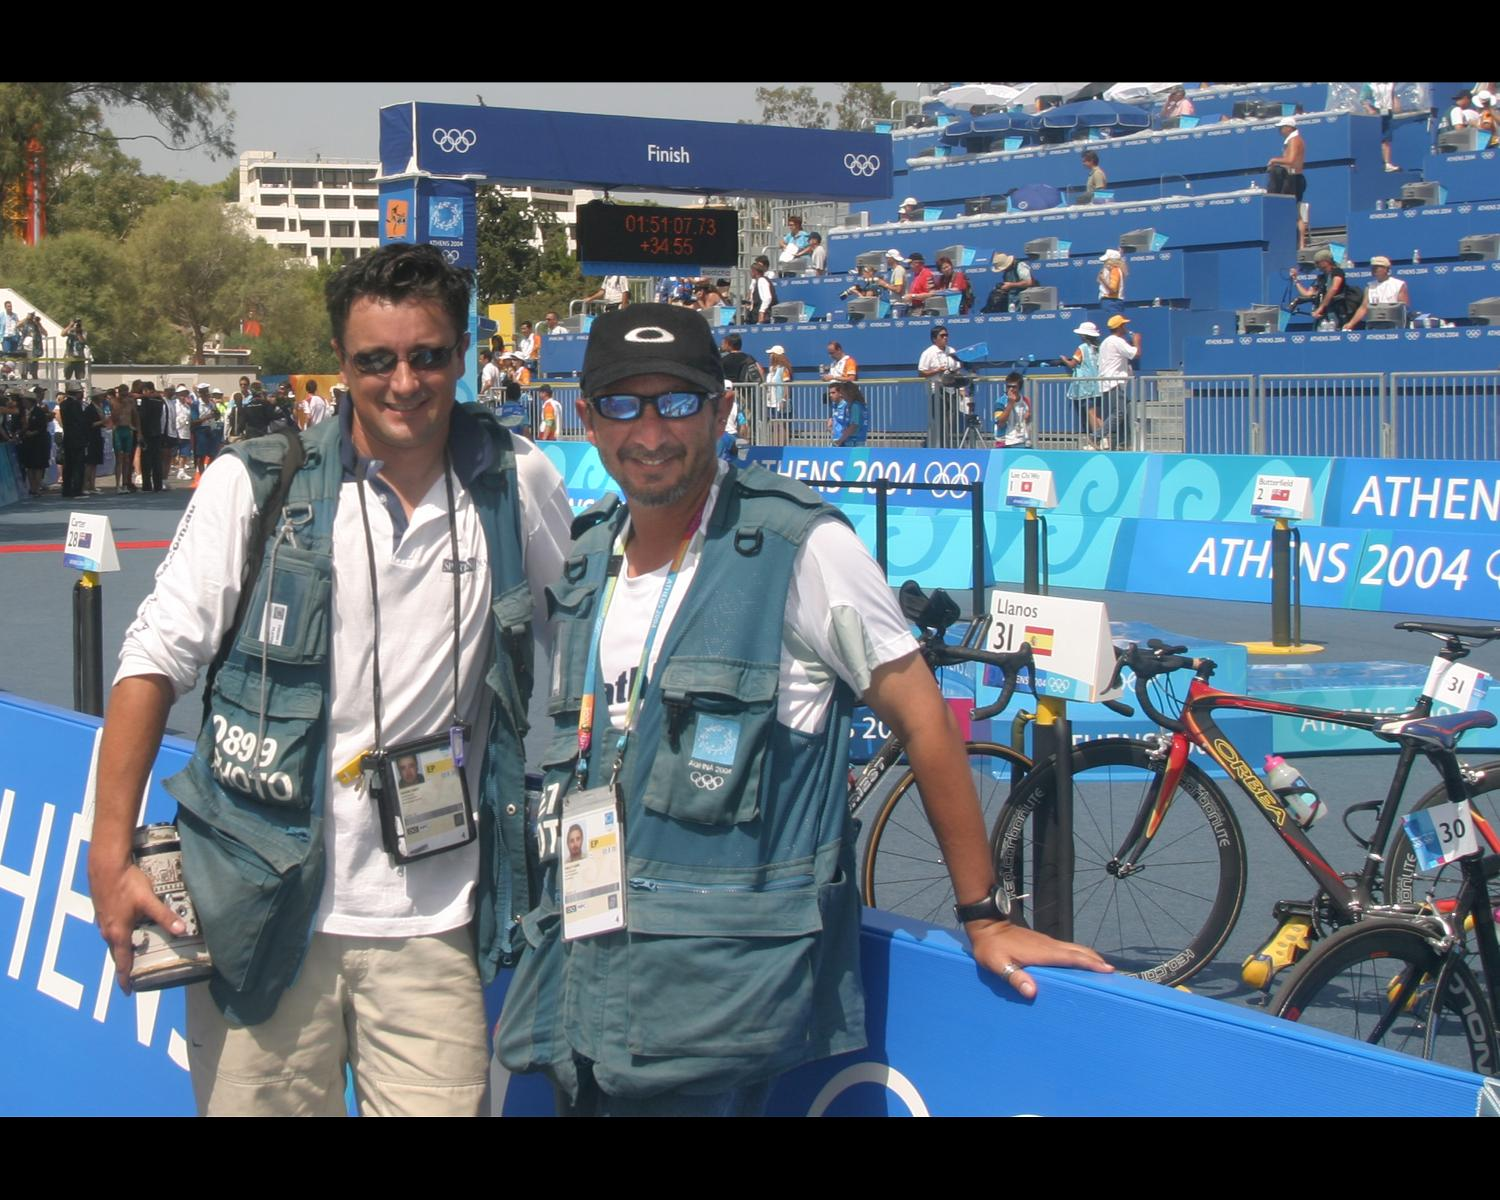 Duane and Delly - 2004 Athens Olympic Games Triathlon